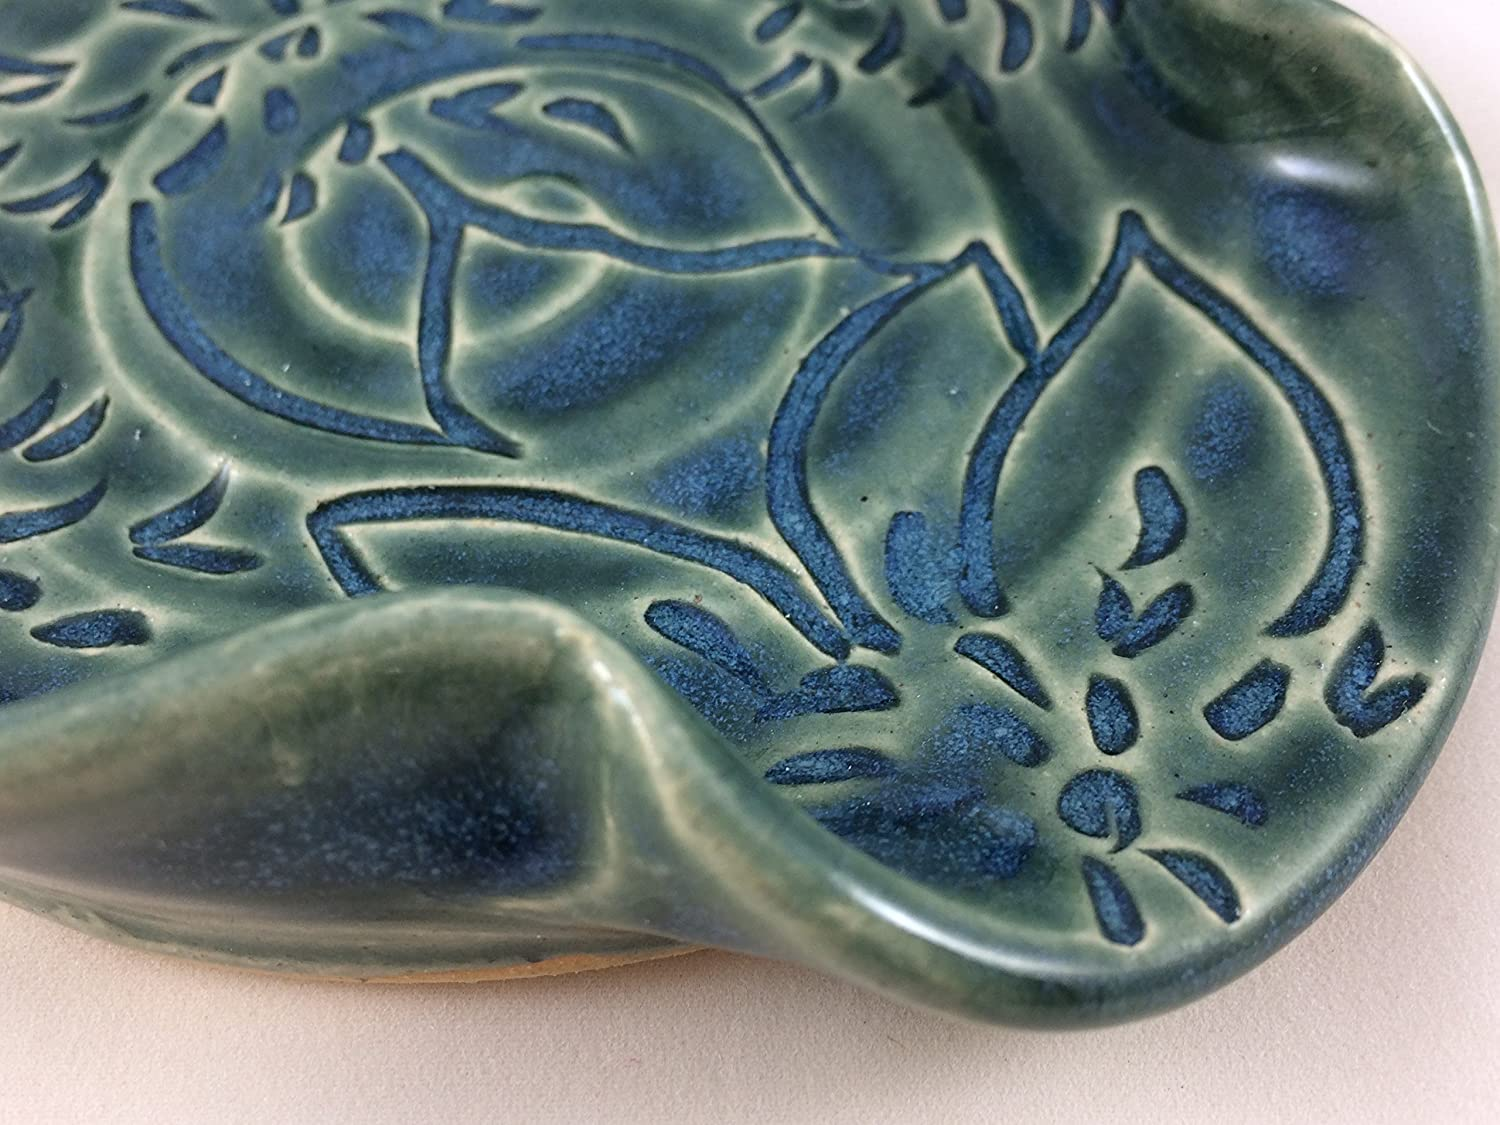 Spoon Rest Ceramic Spoon Rest with Dahlia Carving in Teal